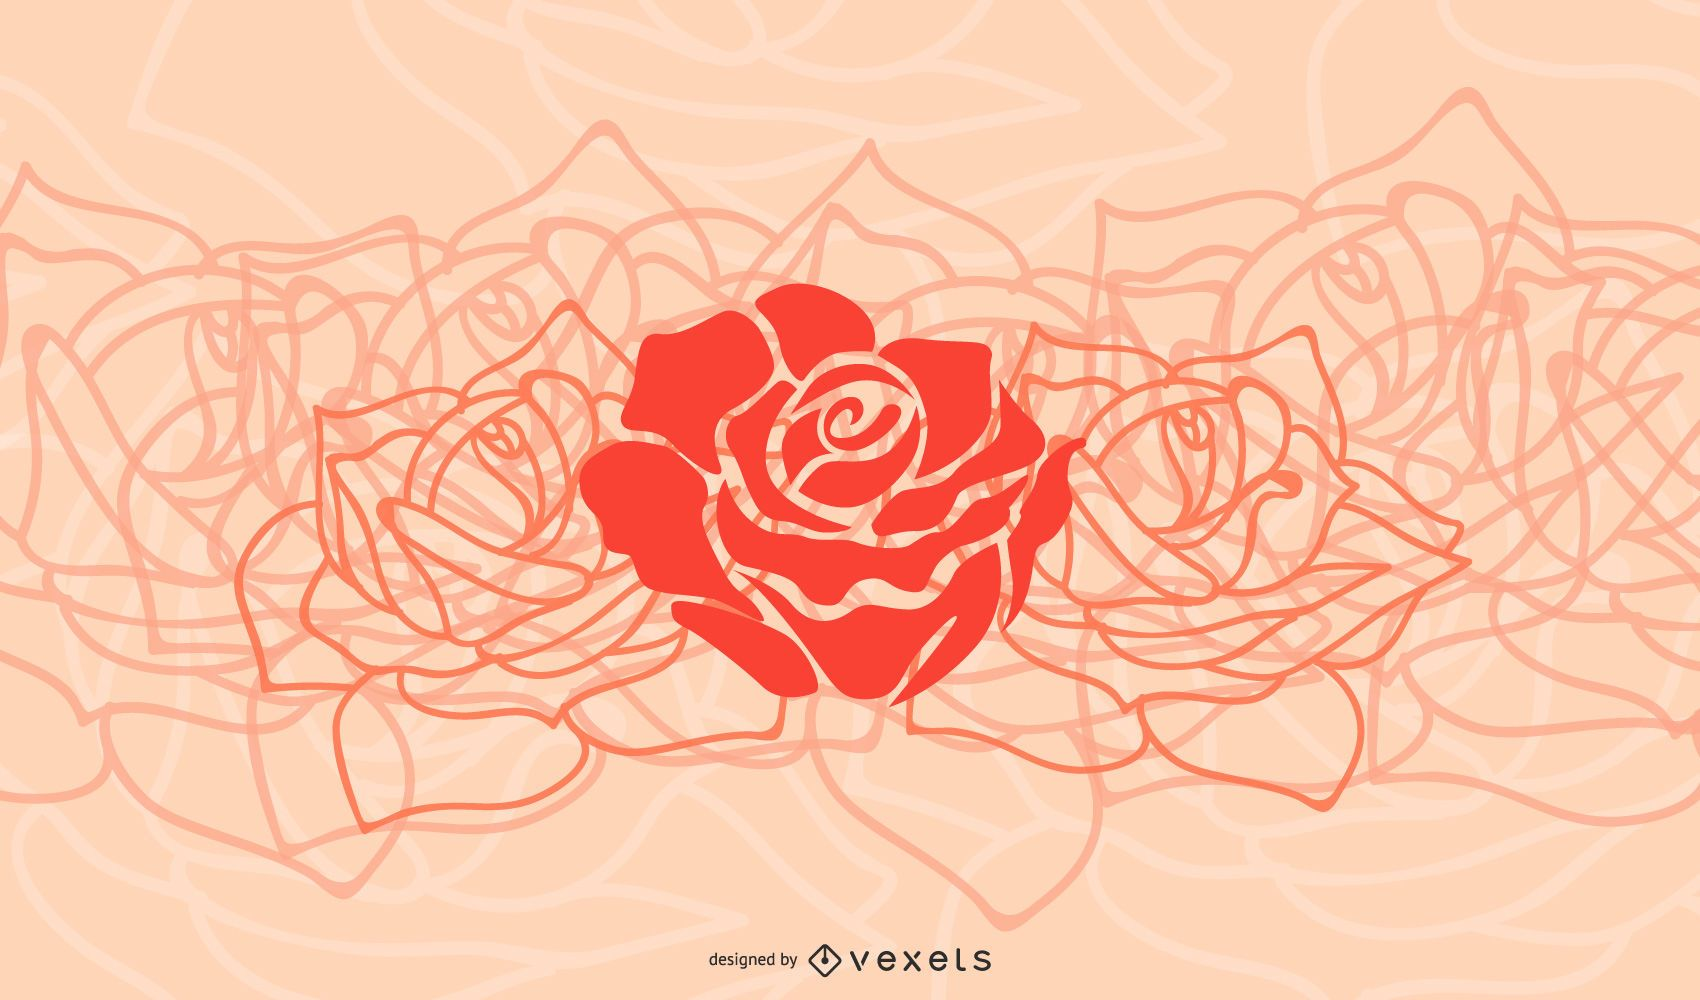 Simplistic Flower Background with Red Roses